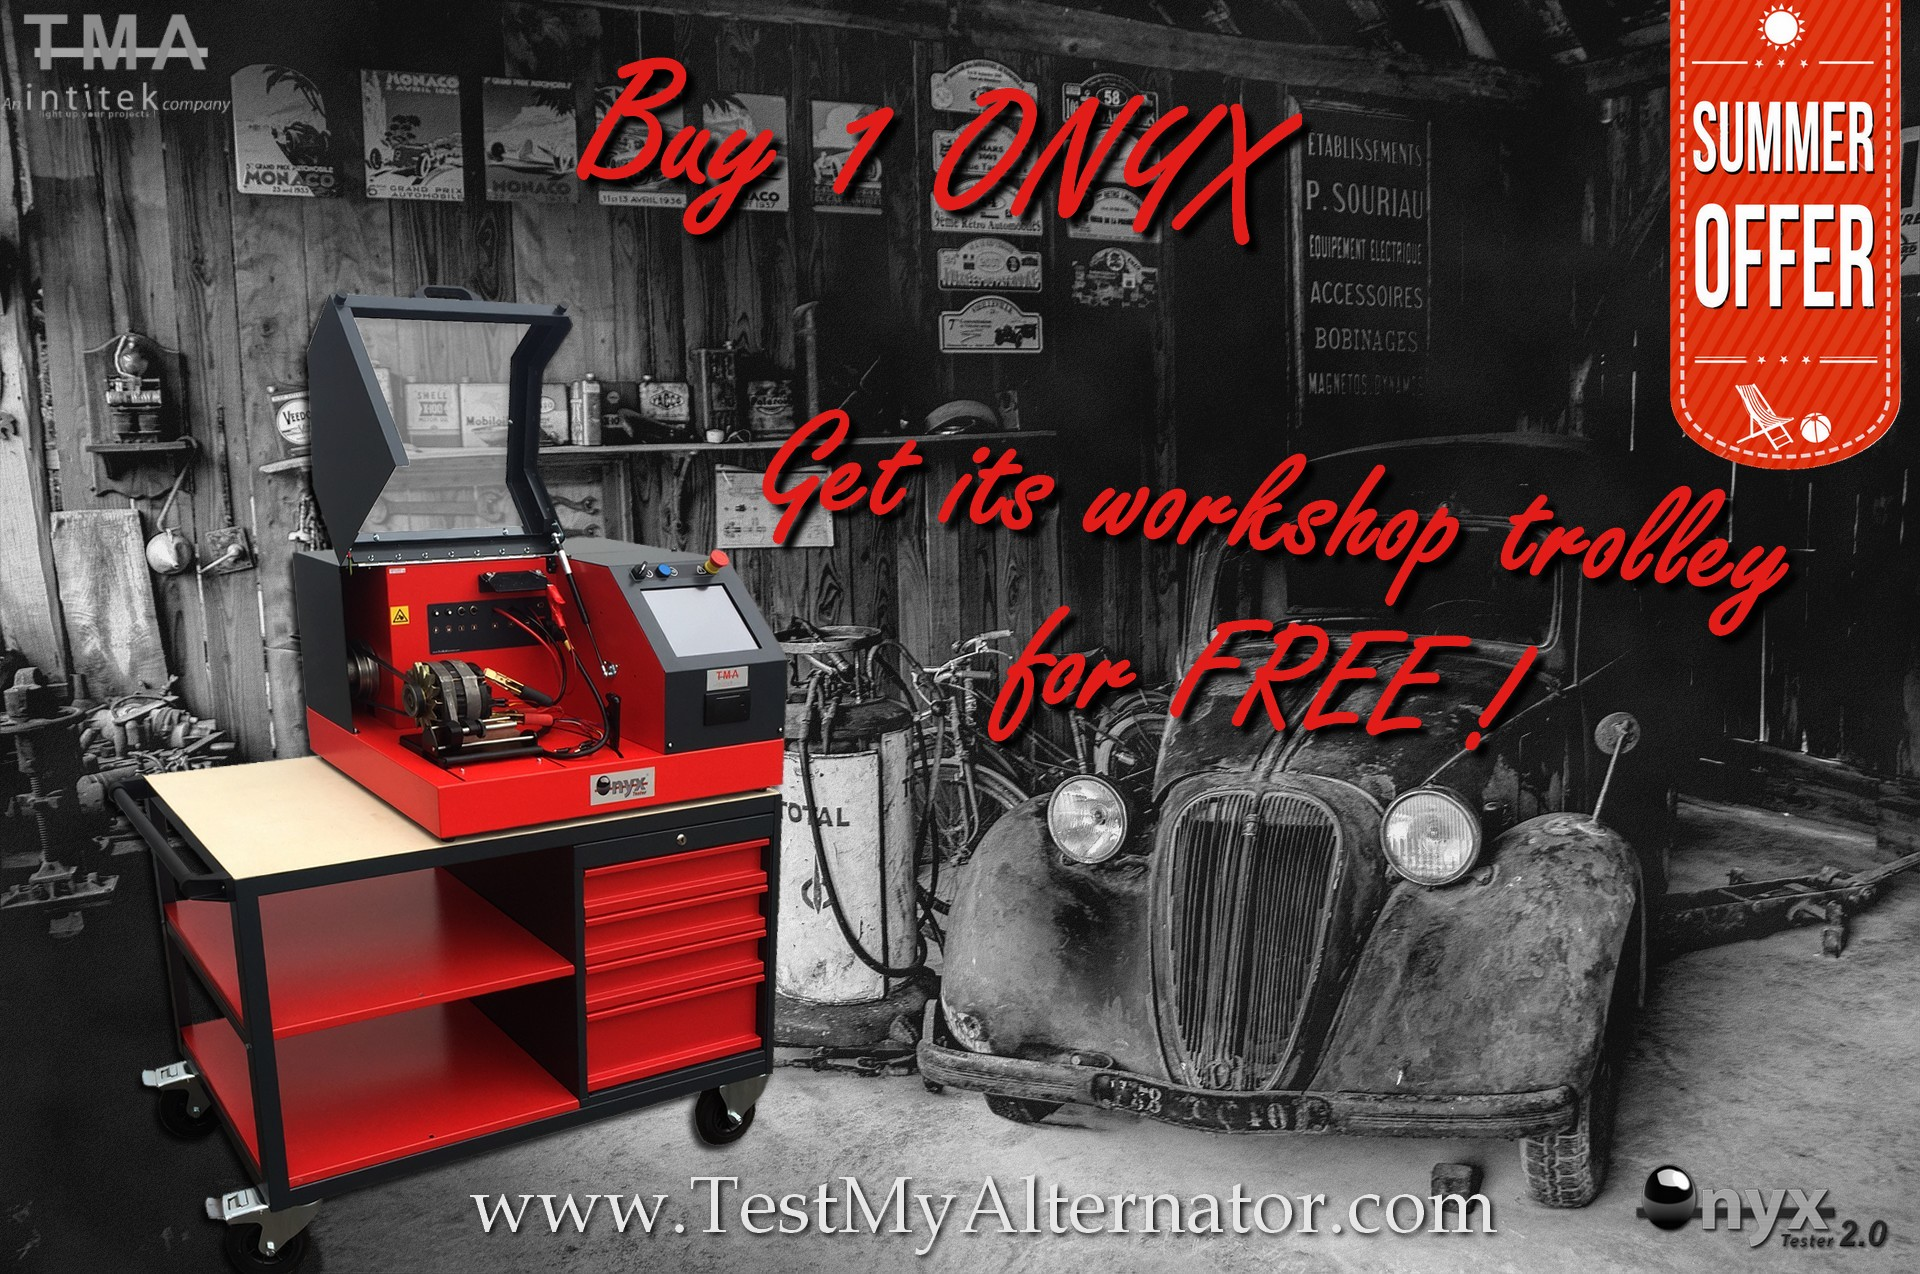 Buy ONYX Get workshop trolley